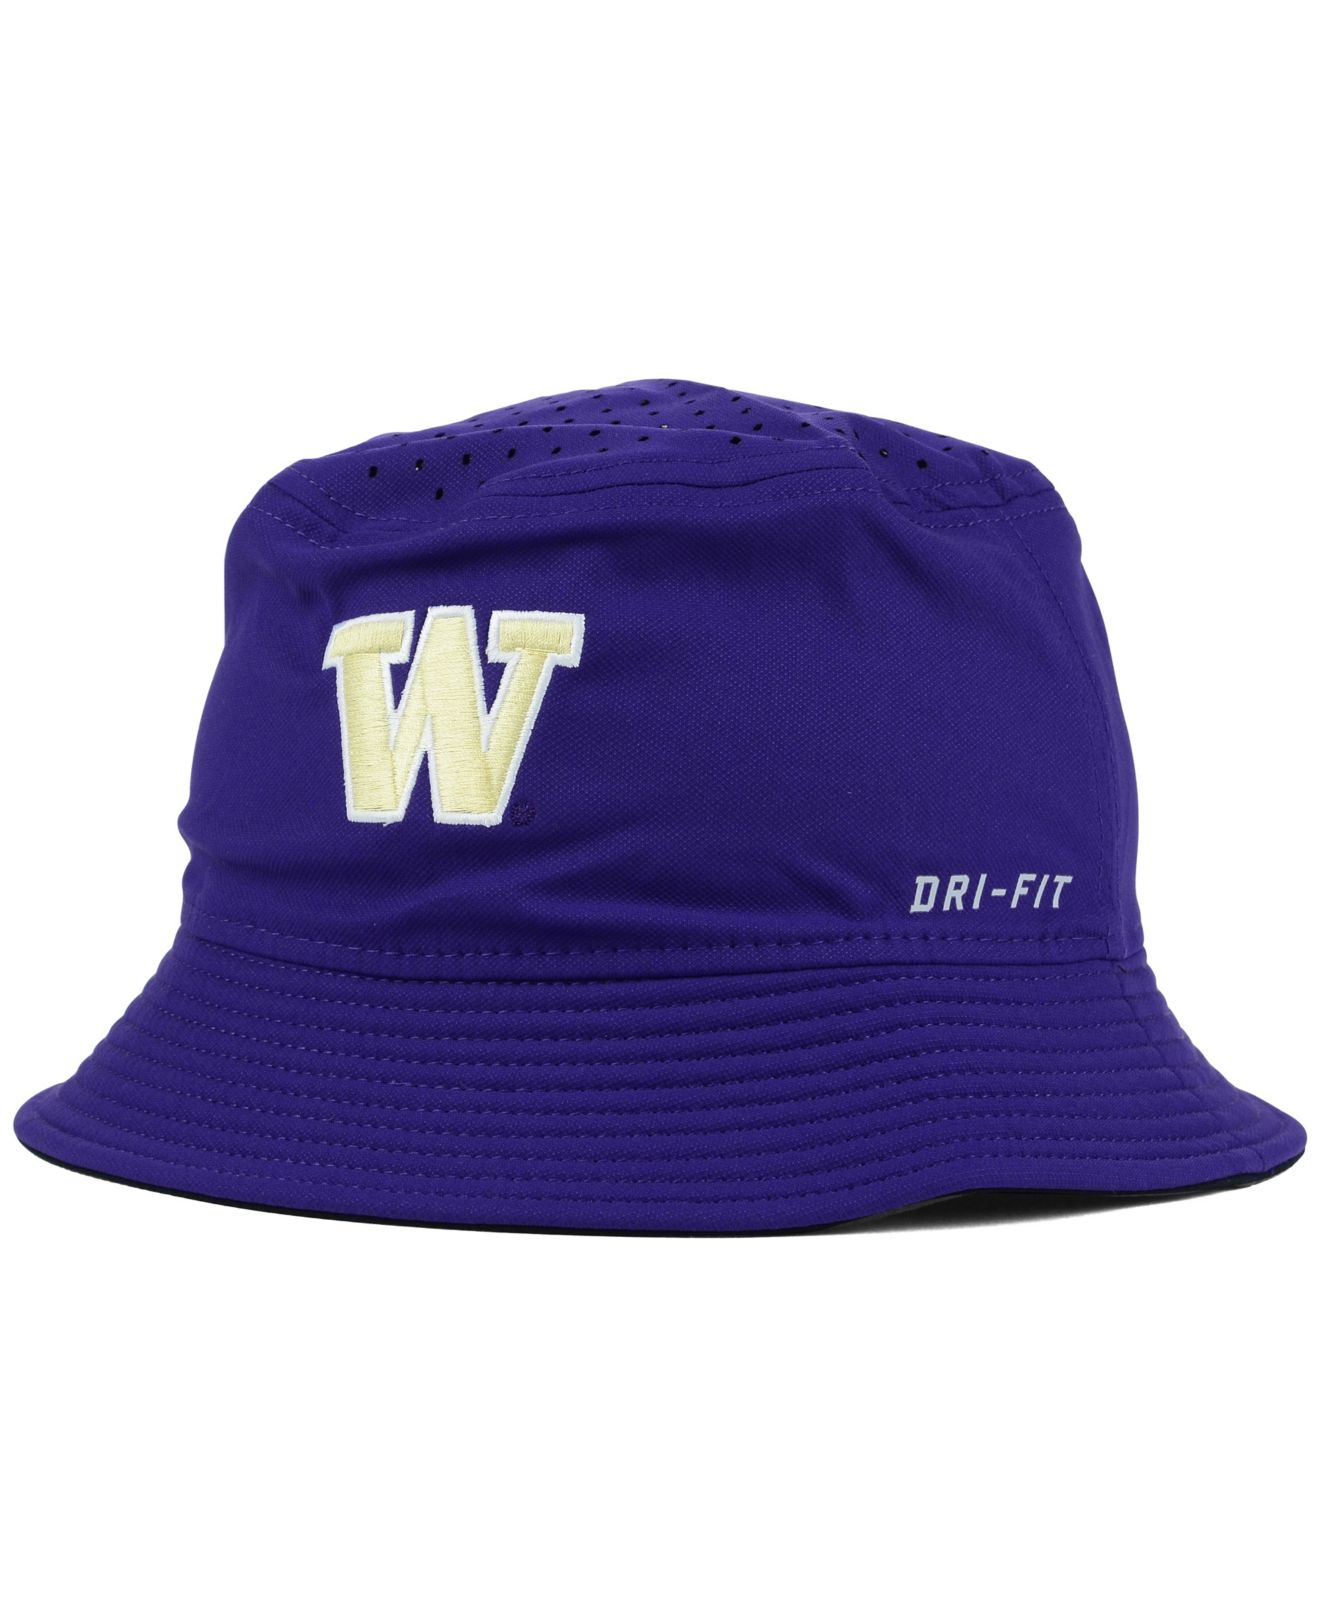 detailed pictures 436ca 9d6f5 coupon code for washington huskies nike ncaa dri fit wool cap purple 671e7  2c292